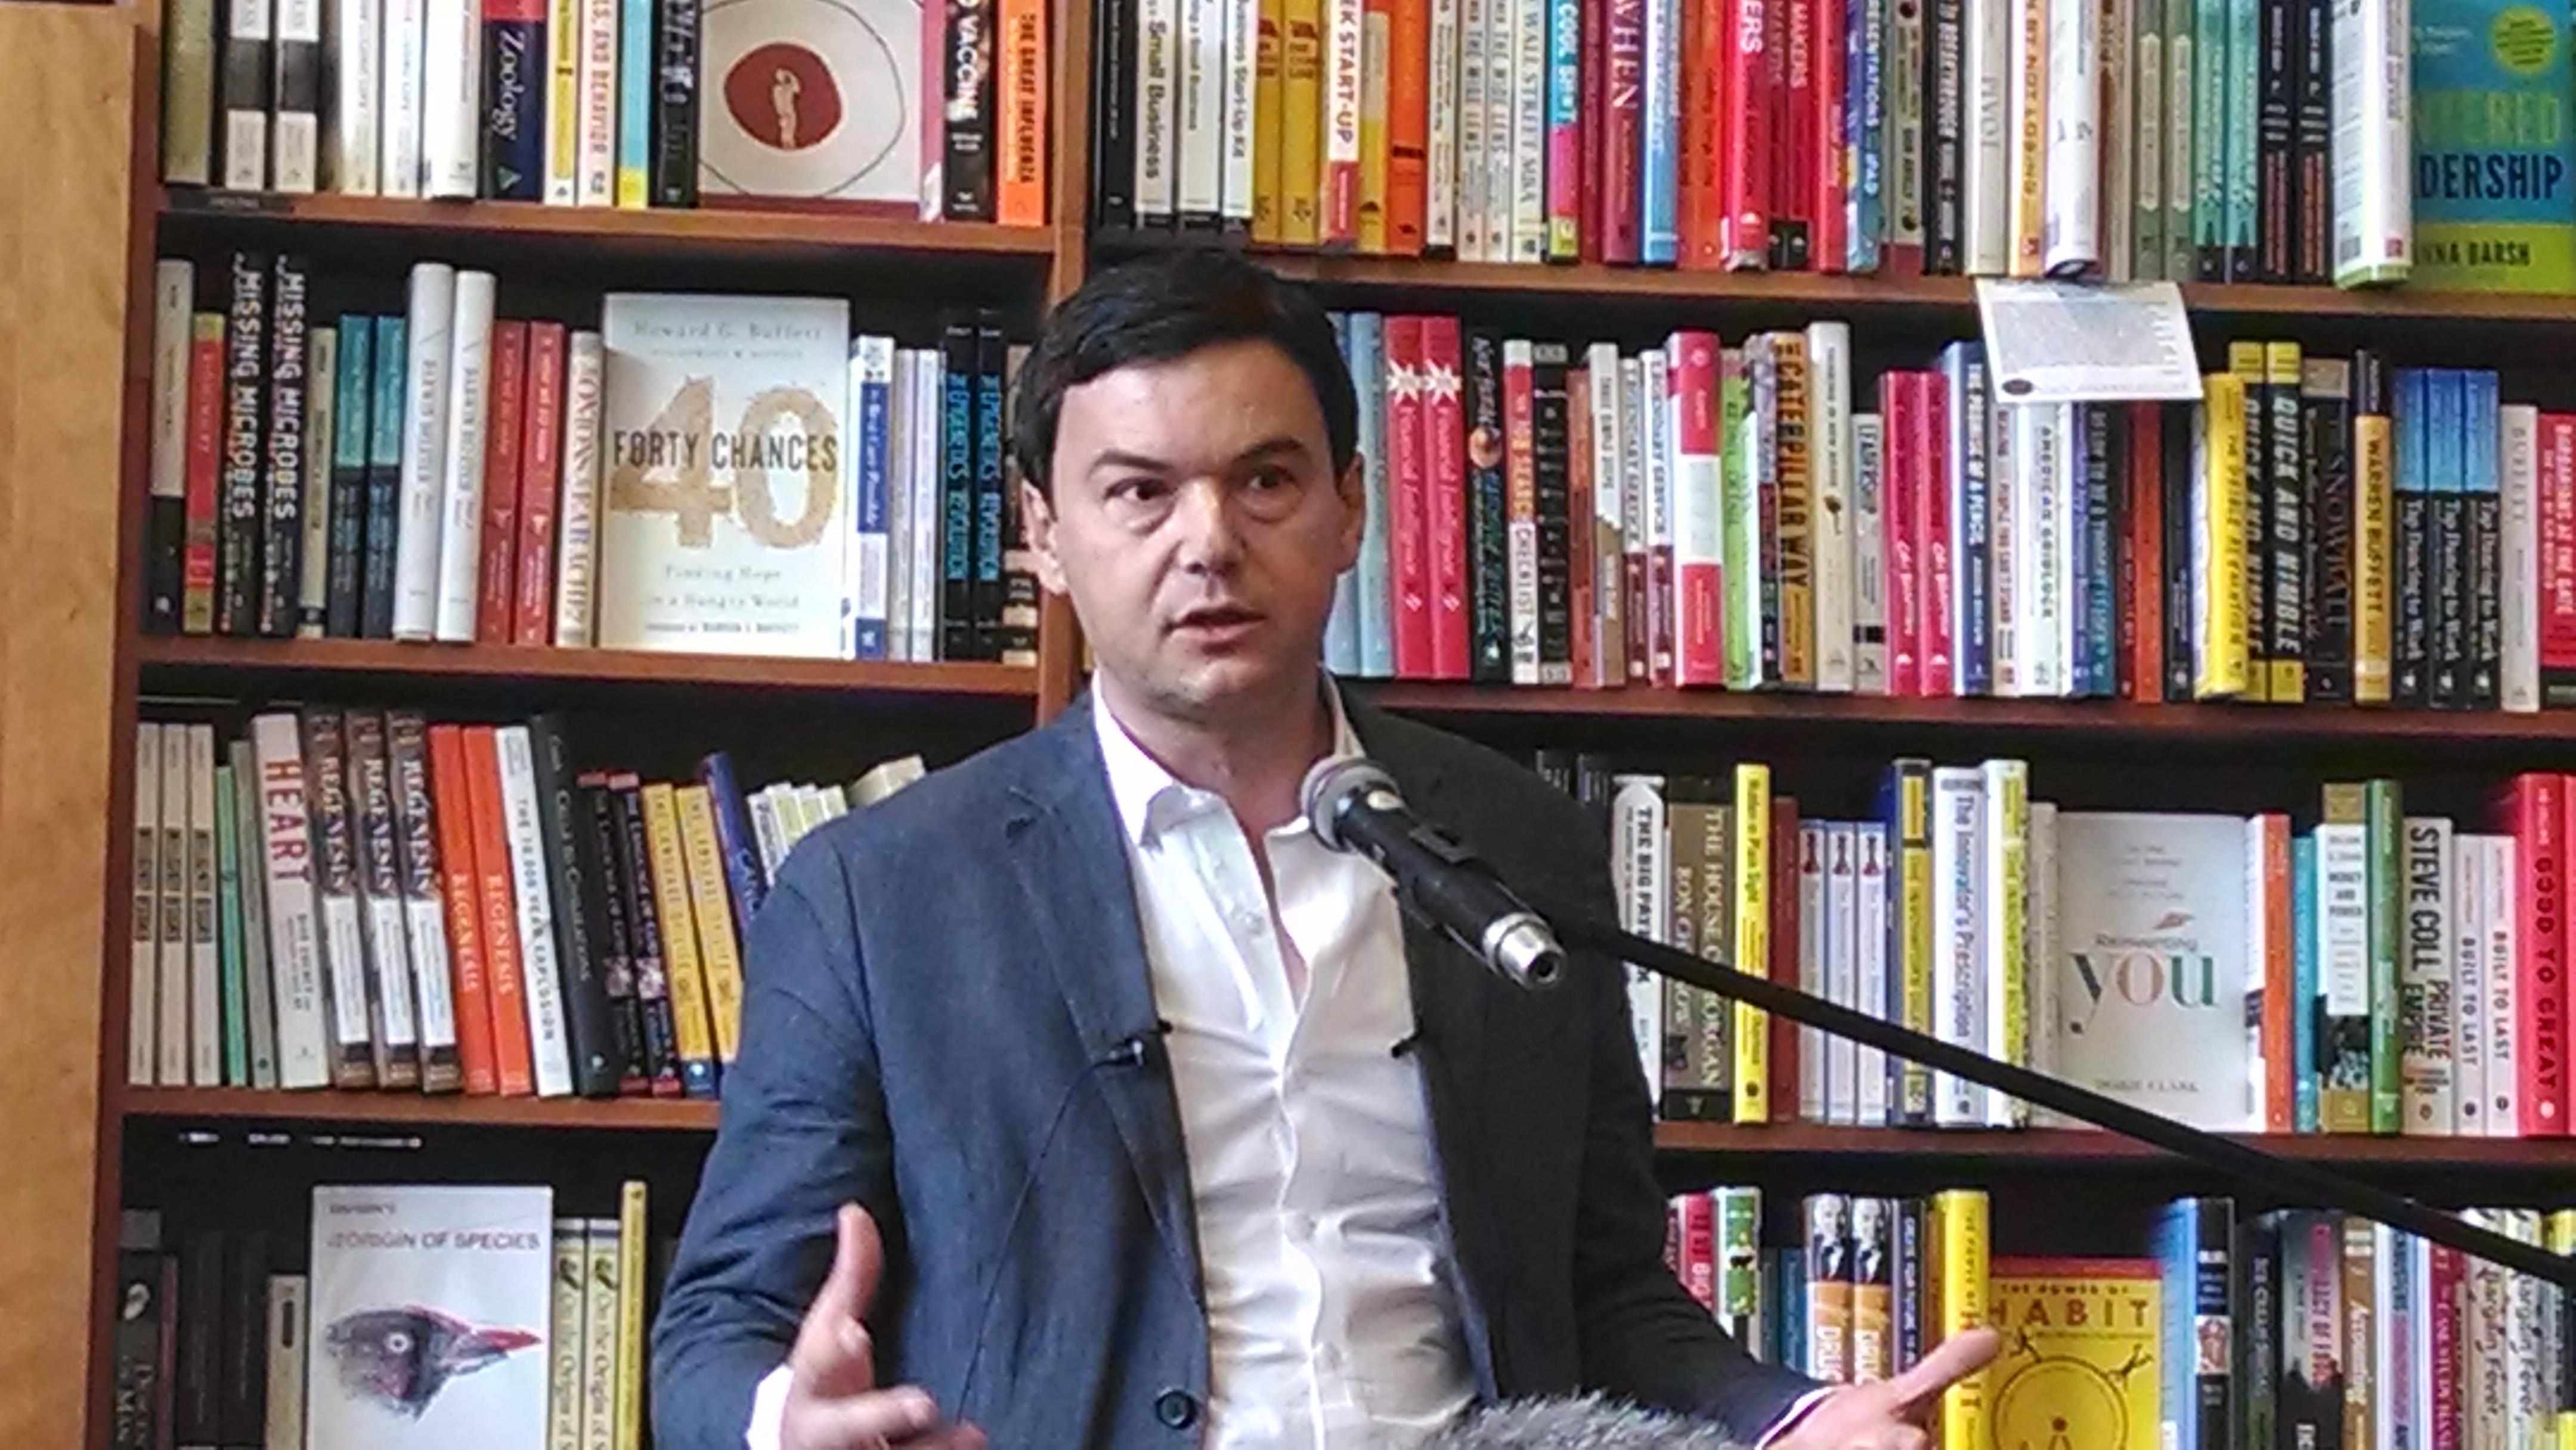 A picture of Thomas Piketty in front of a bookcase